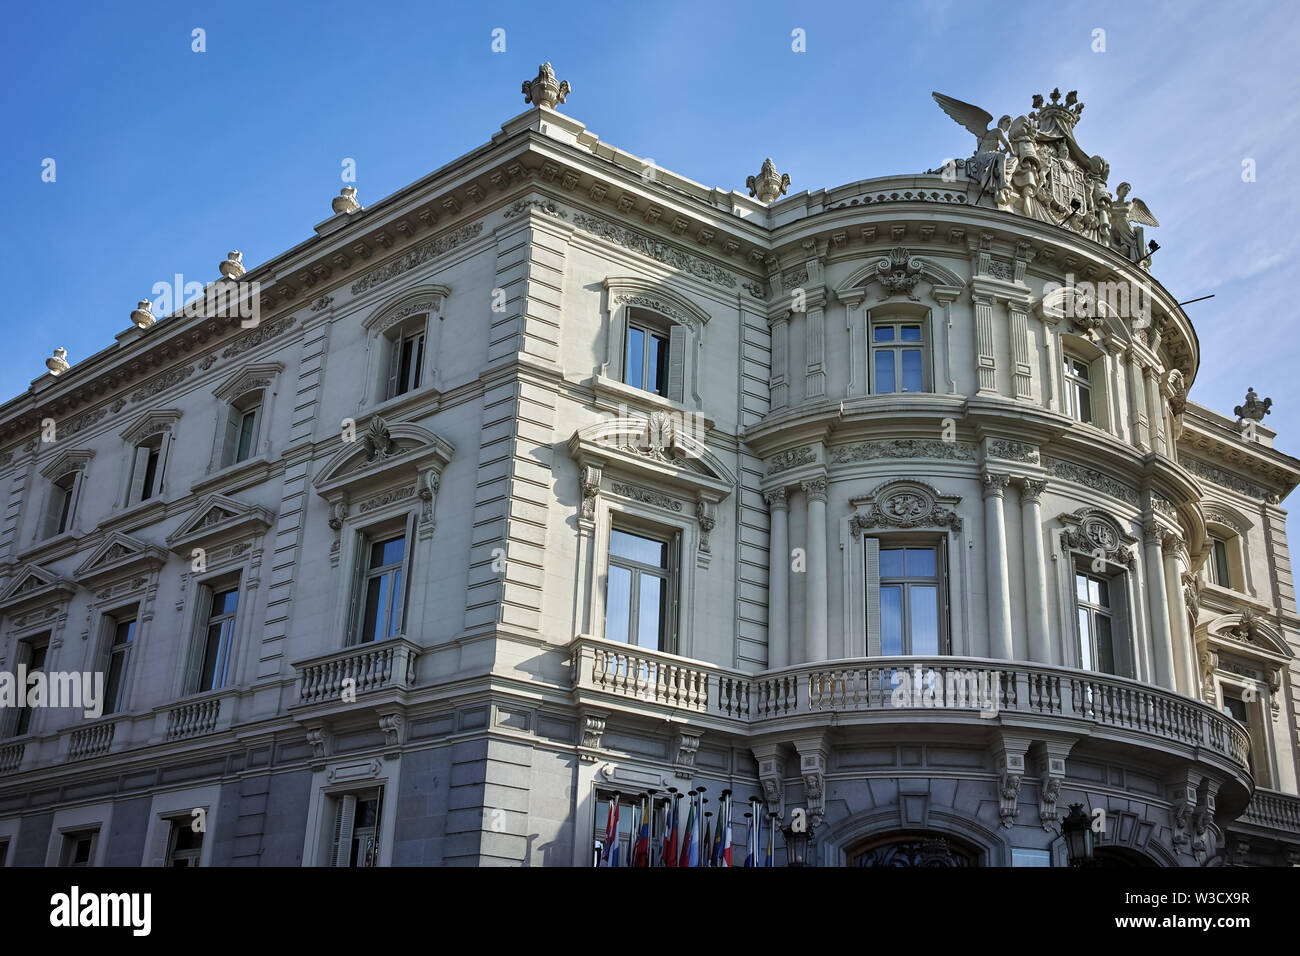 MADRID, SPAIN - JANUARY 24, 2018: Palace of Linares at Cibeles square in City of Madrid, Spain - Stock Image